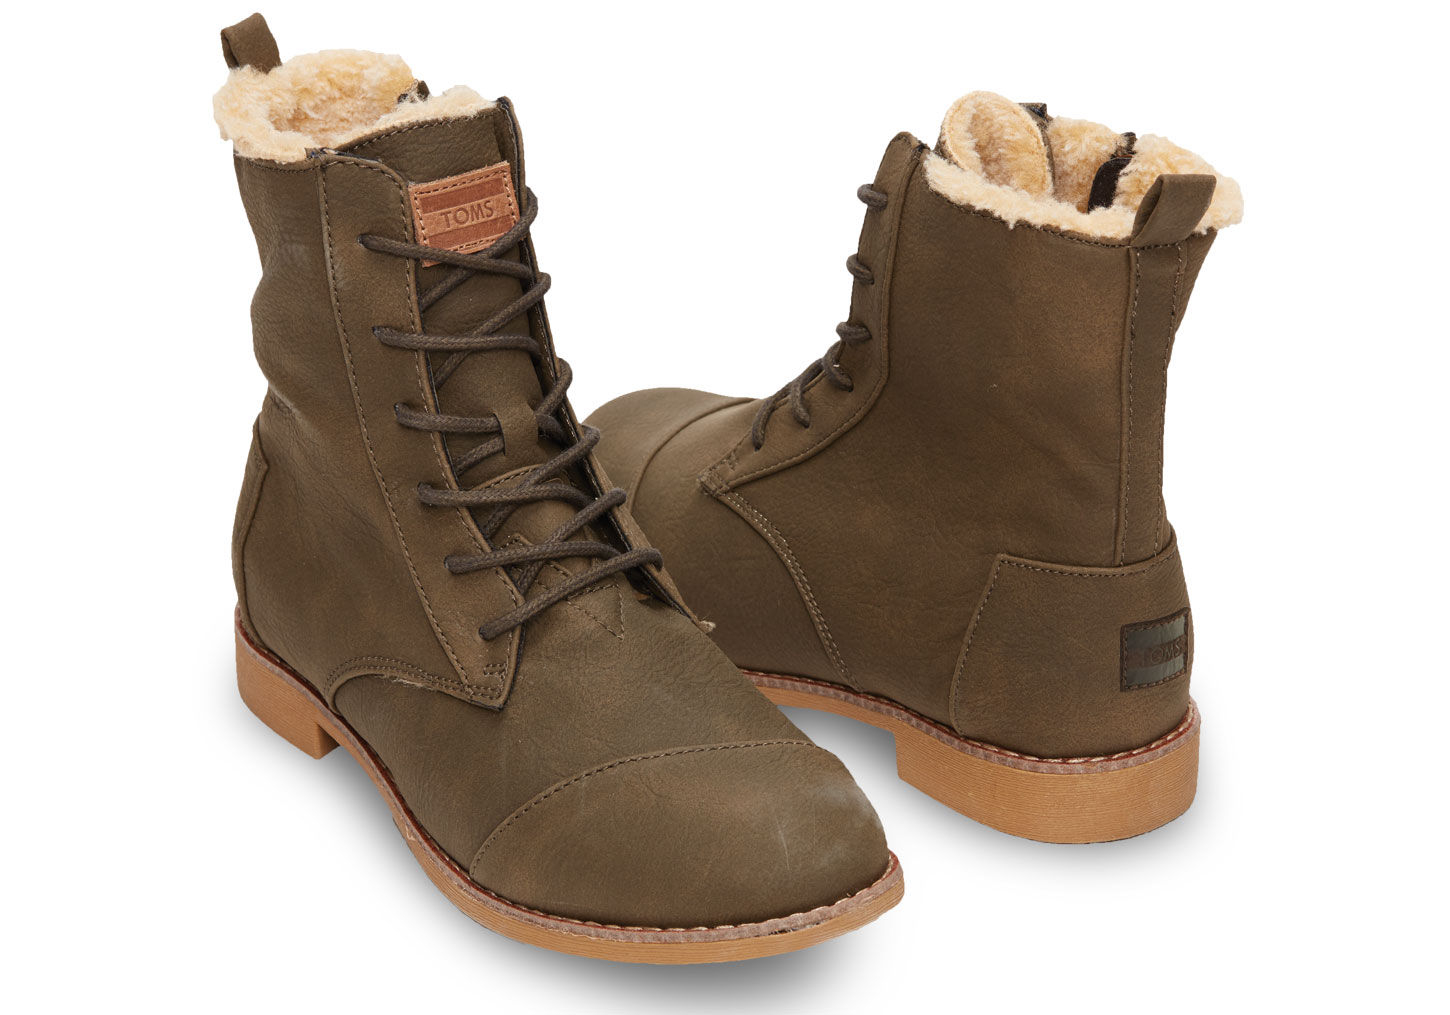 372b5bcfc2f TOMS Olive Synthetic Leather Women's Alpa Boots in Green - Lyst